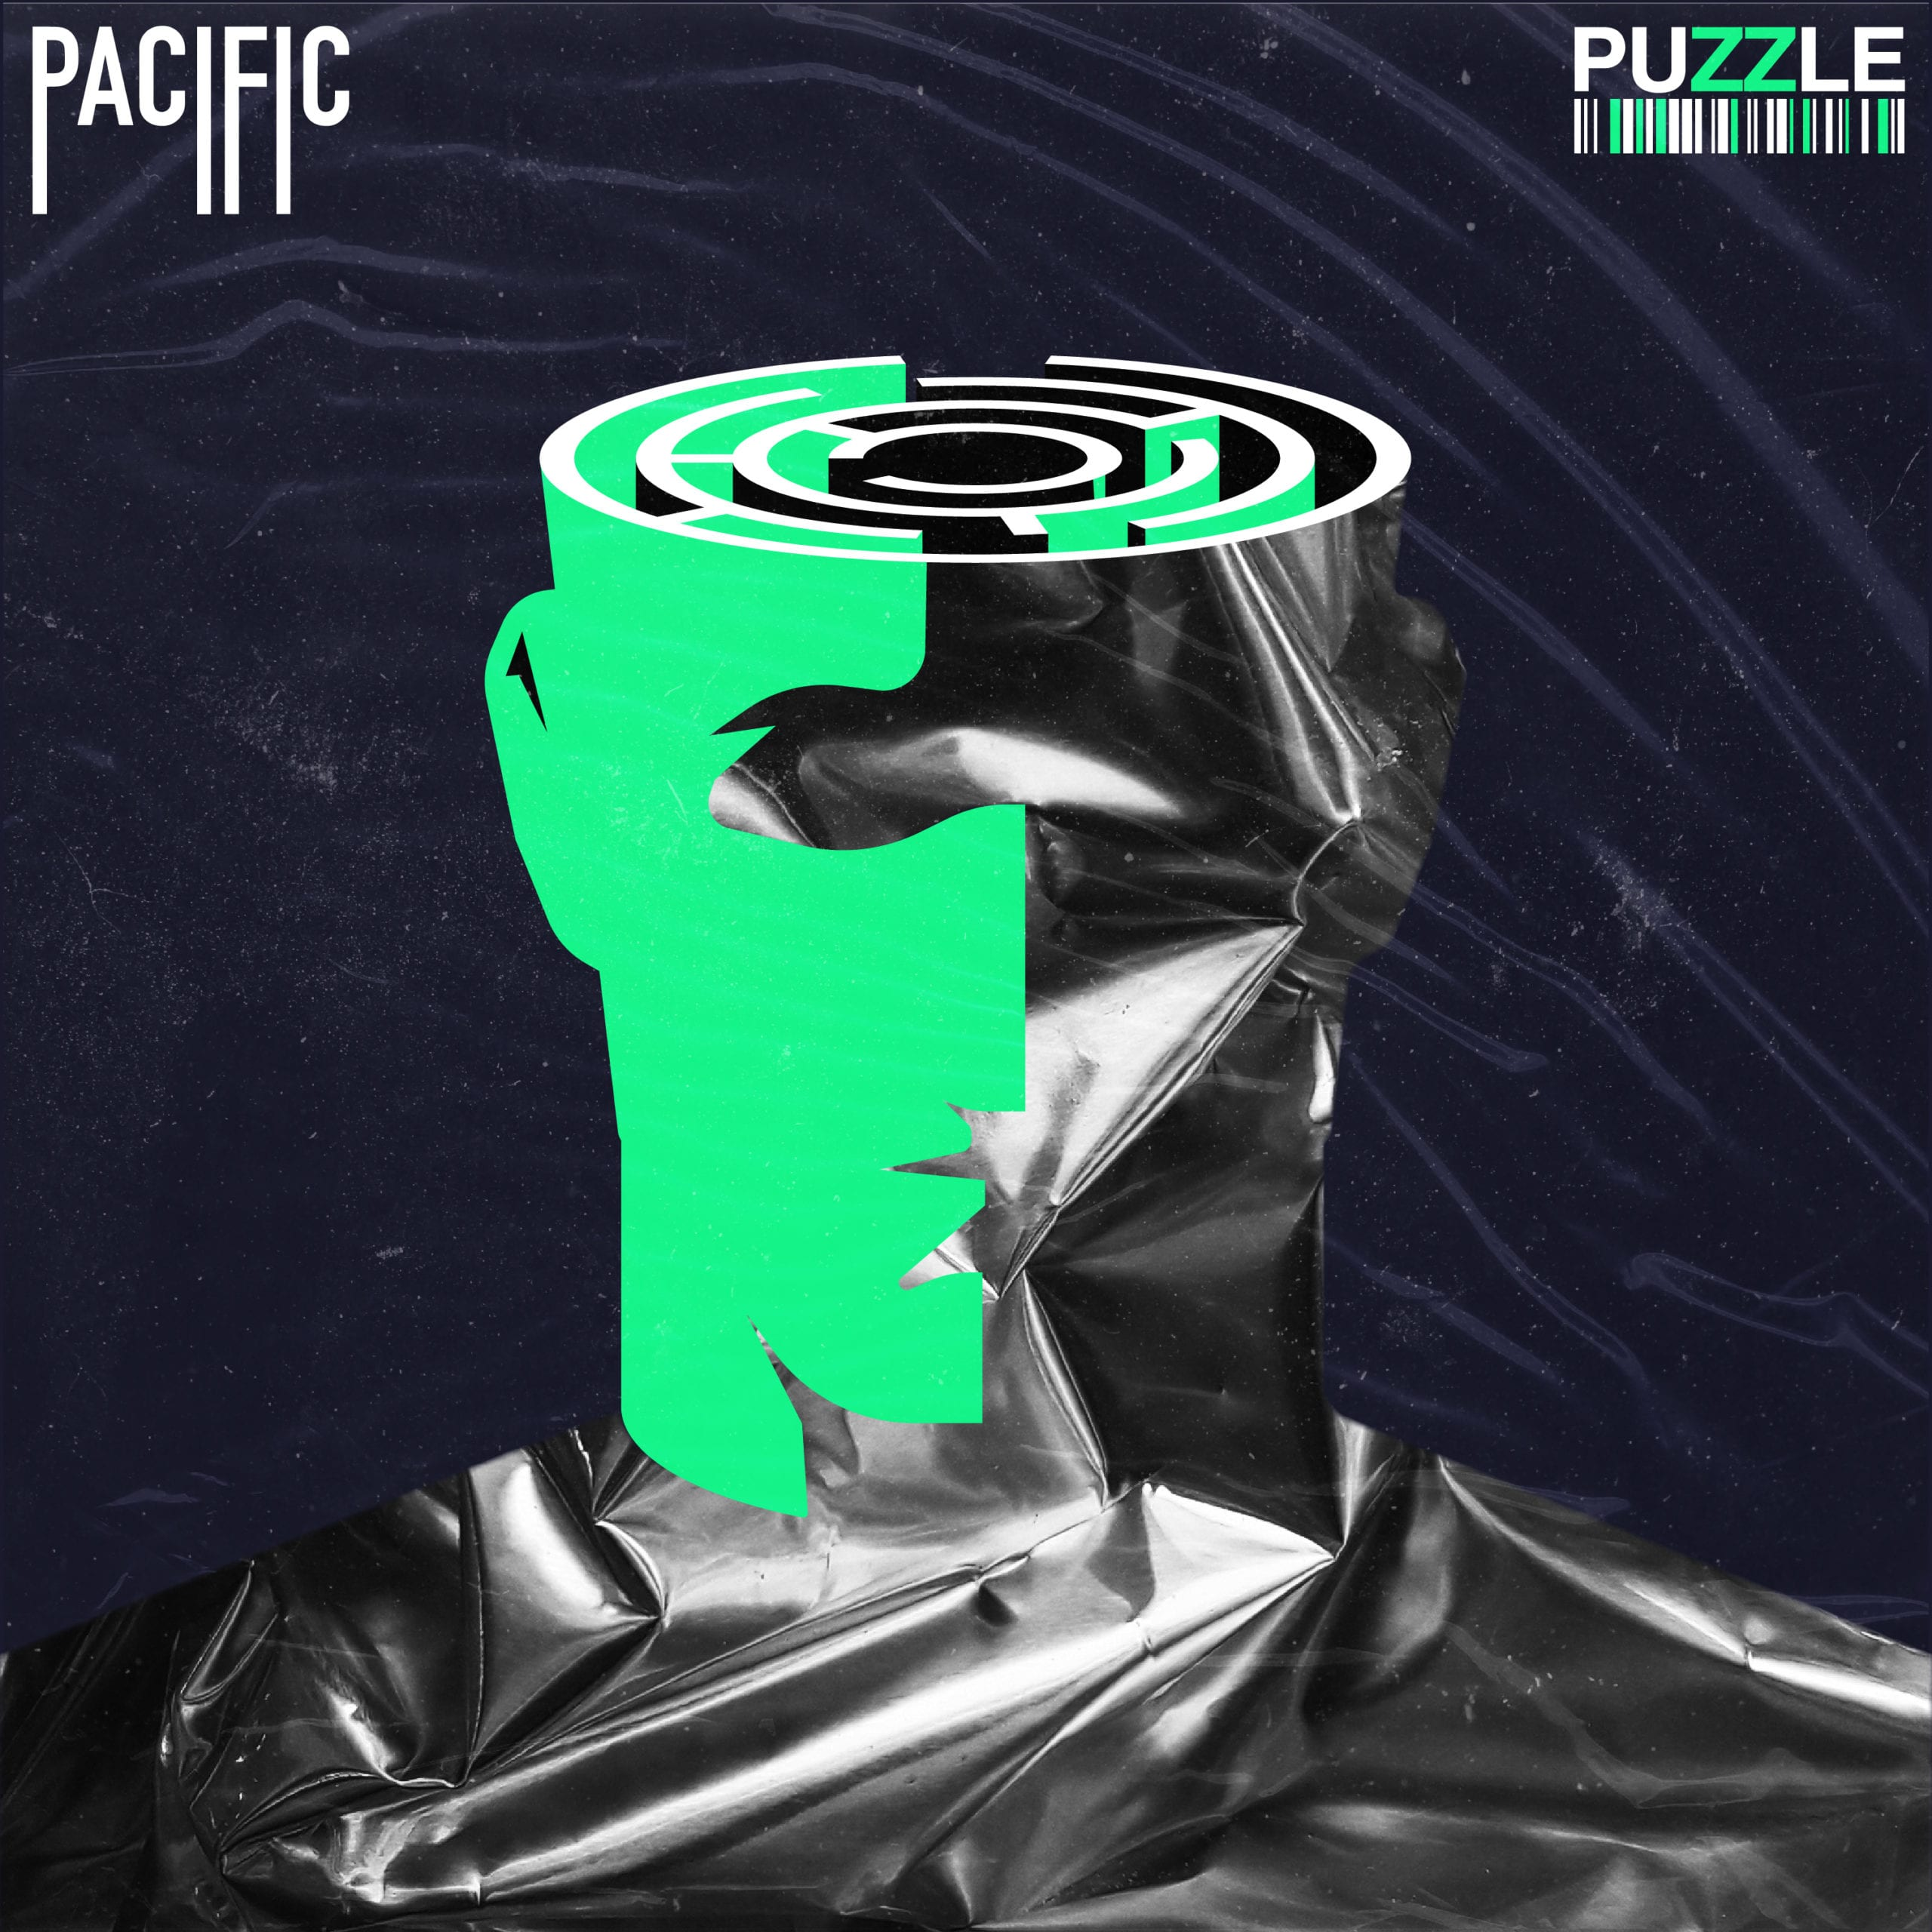 Artwork for the single Puzzle by the indie rock band Pacific